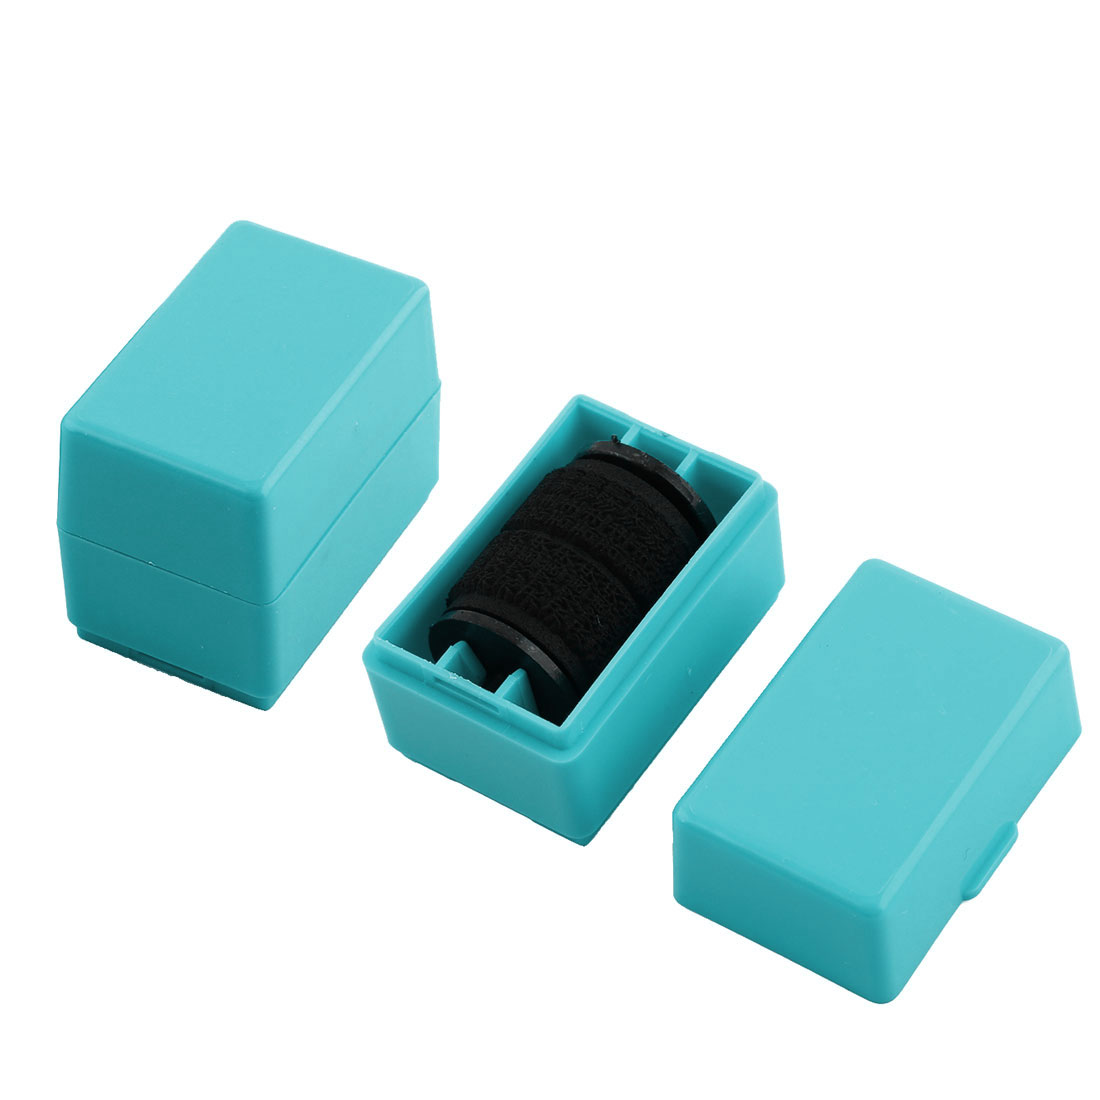 Security Hide Confidential Privacy Identity ID Protection Self Inking Rolling Stock Stamp Sky Blue 2pcs